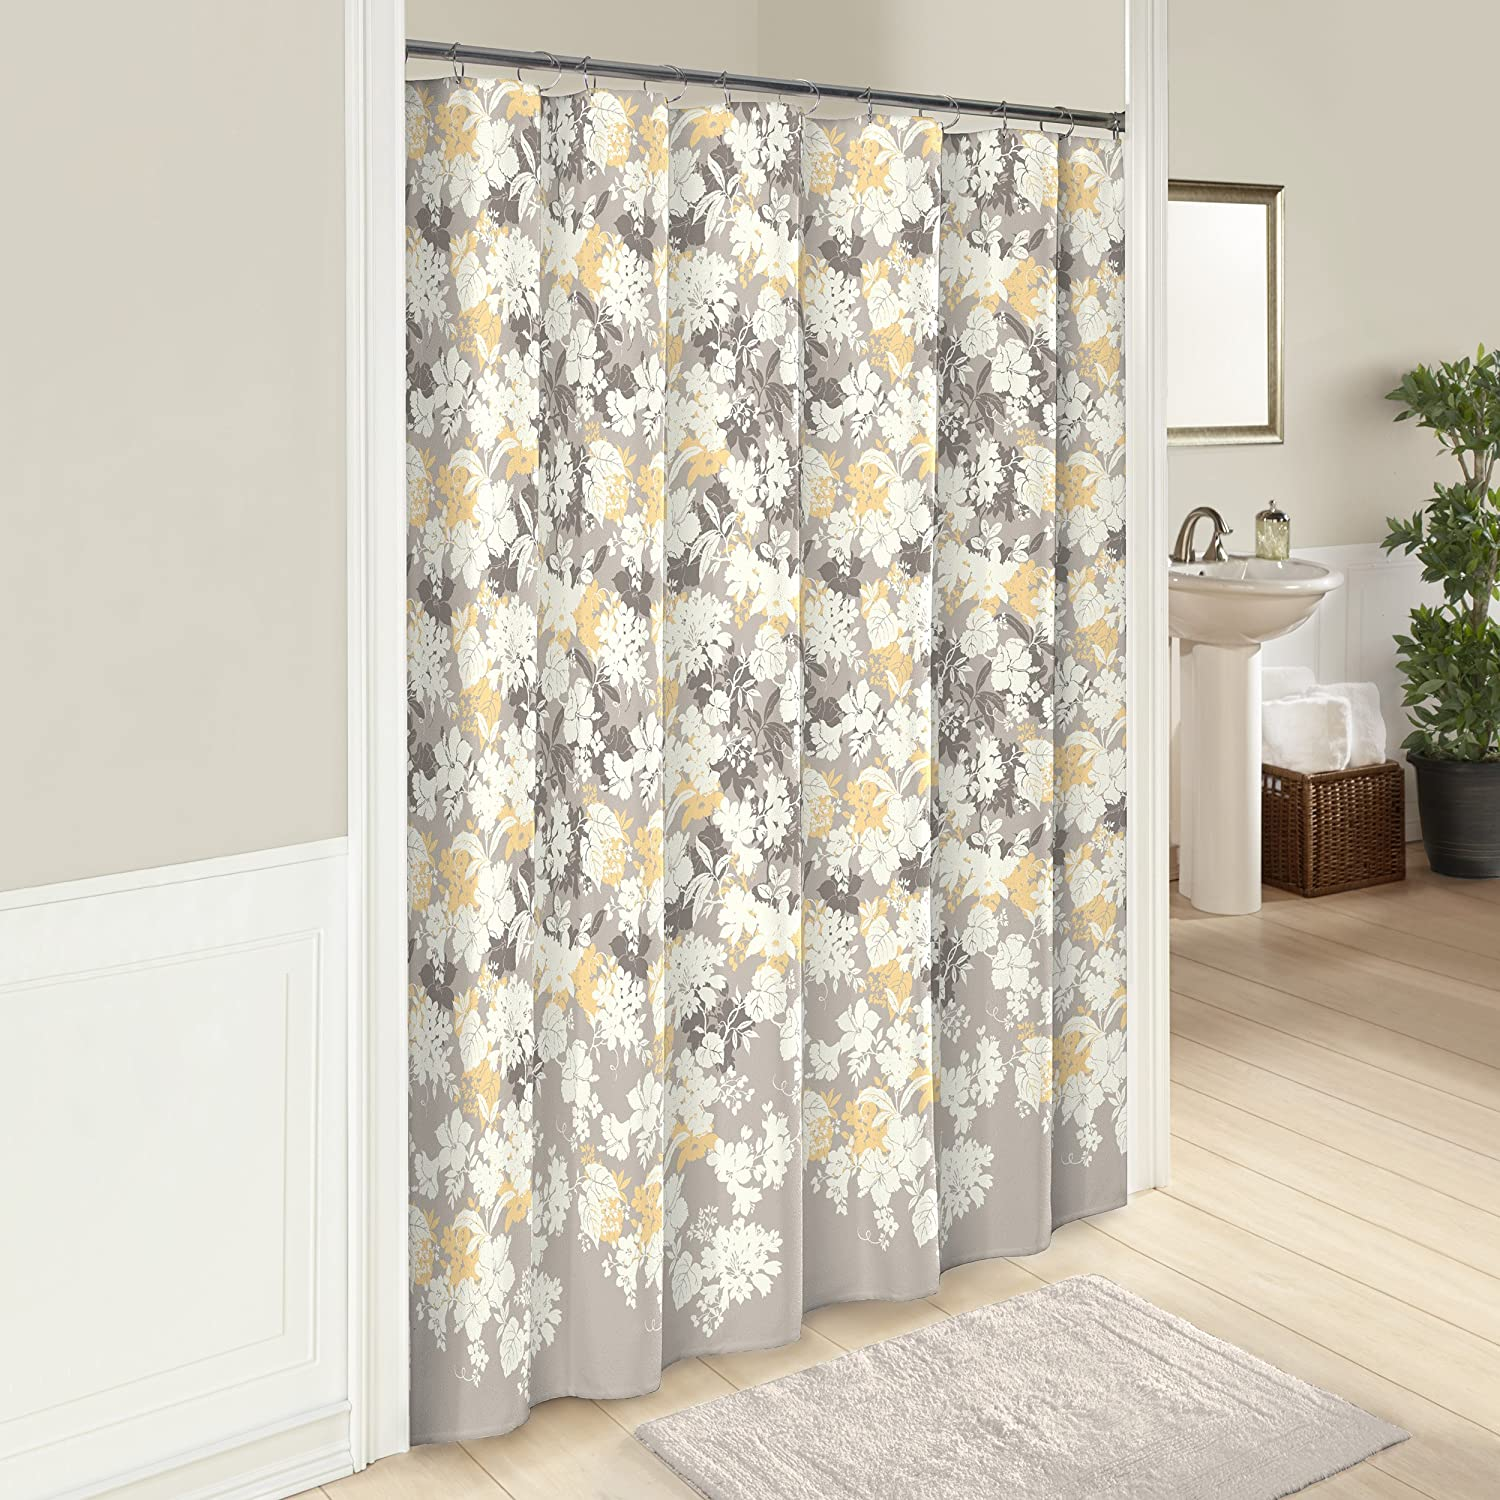 Multicolor Garden Party 72 x 72 Machine Washable Bath Curtains MARBLE HILL Shower Curtains for Bathroom